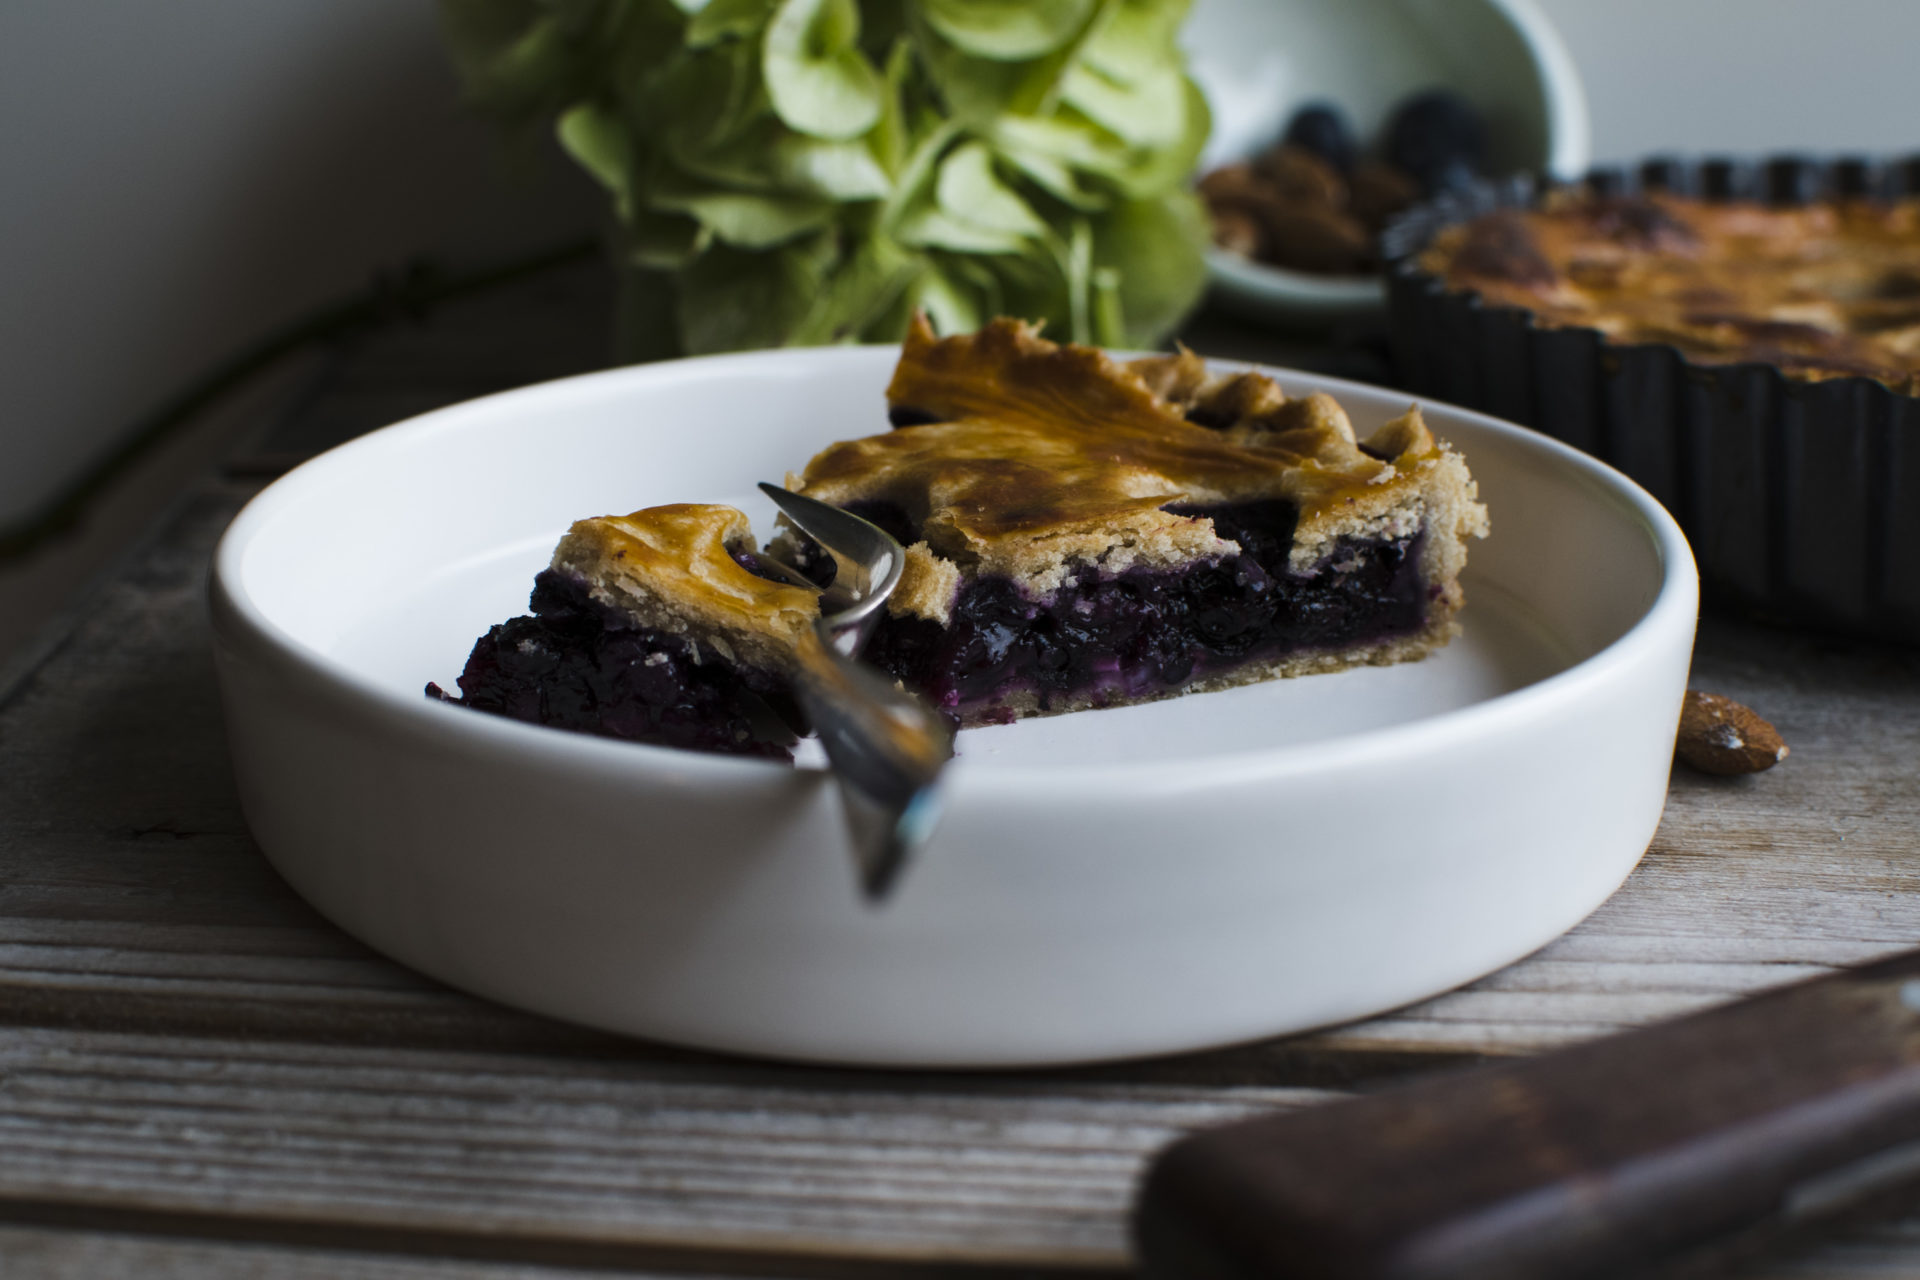 Blaubeer-Mandel-Pie /Blueberry almond pie [wienerbroed.com] Das perfekte Soulfood für Schmuddelwetter / the perfect soulfood for lousy weather